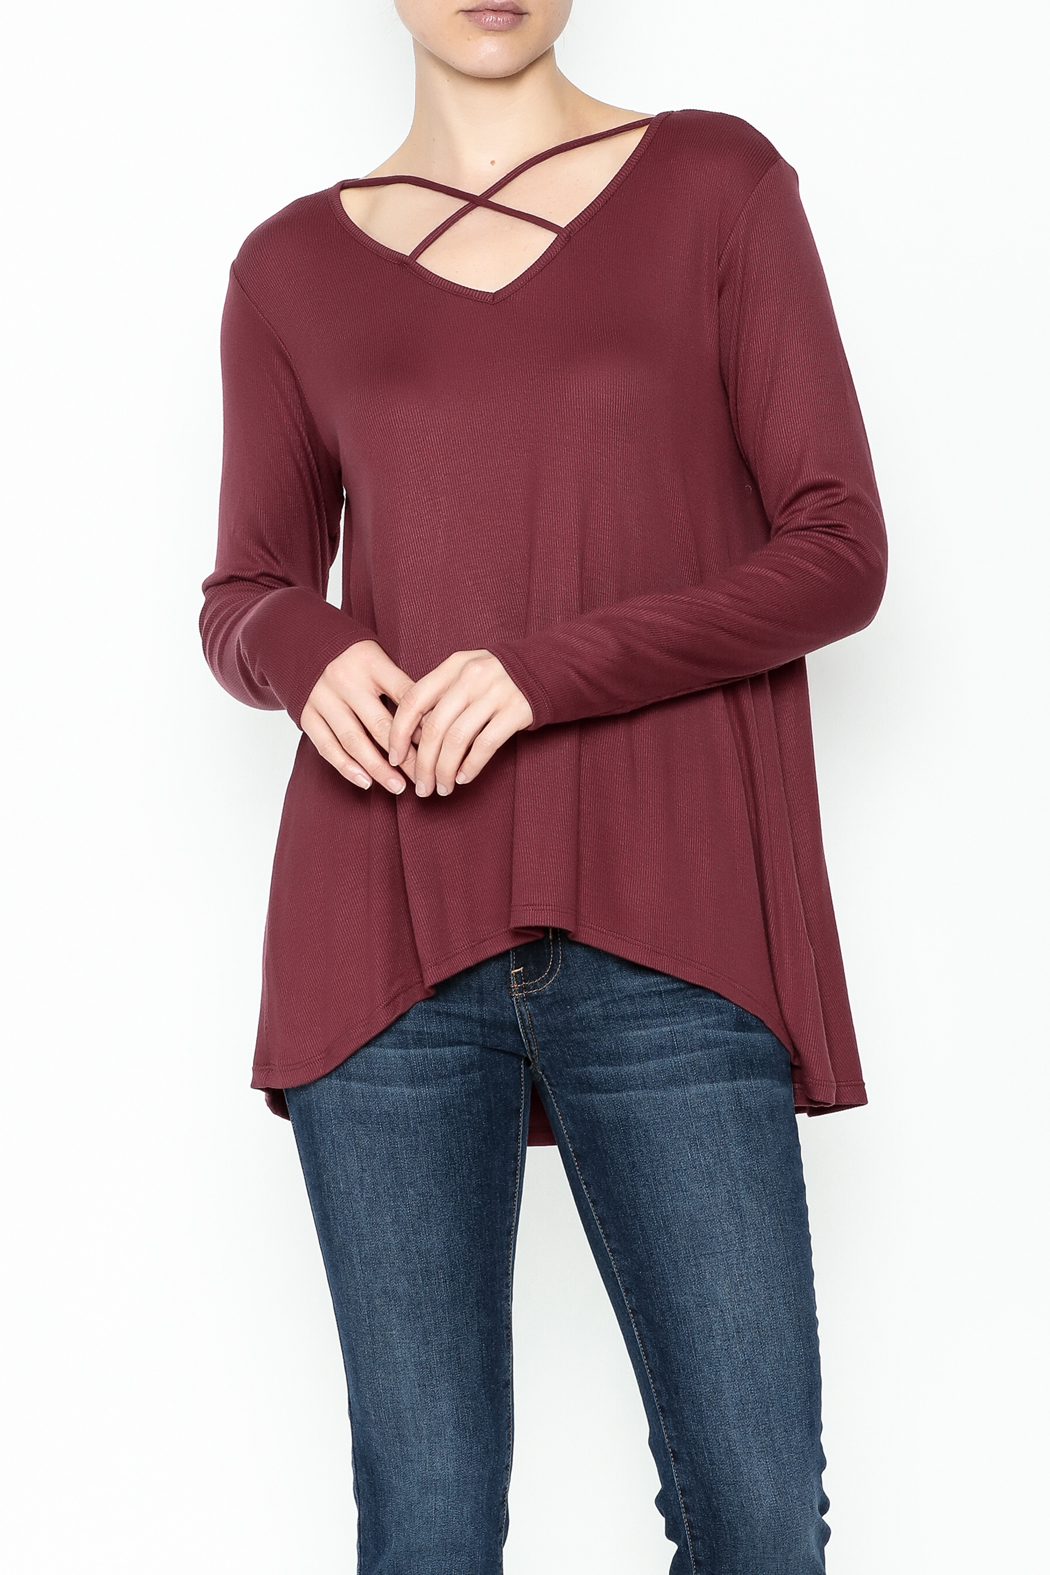 Elan Criss Cross Top - Front Cropped Image